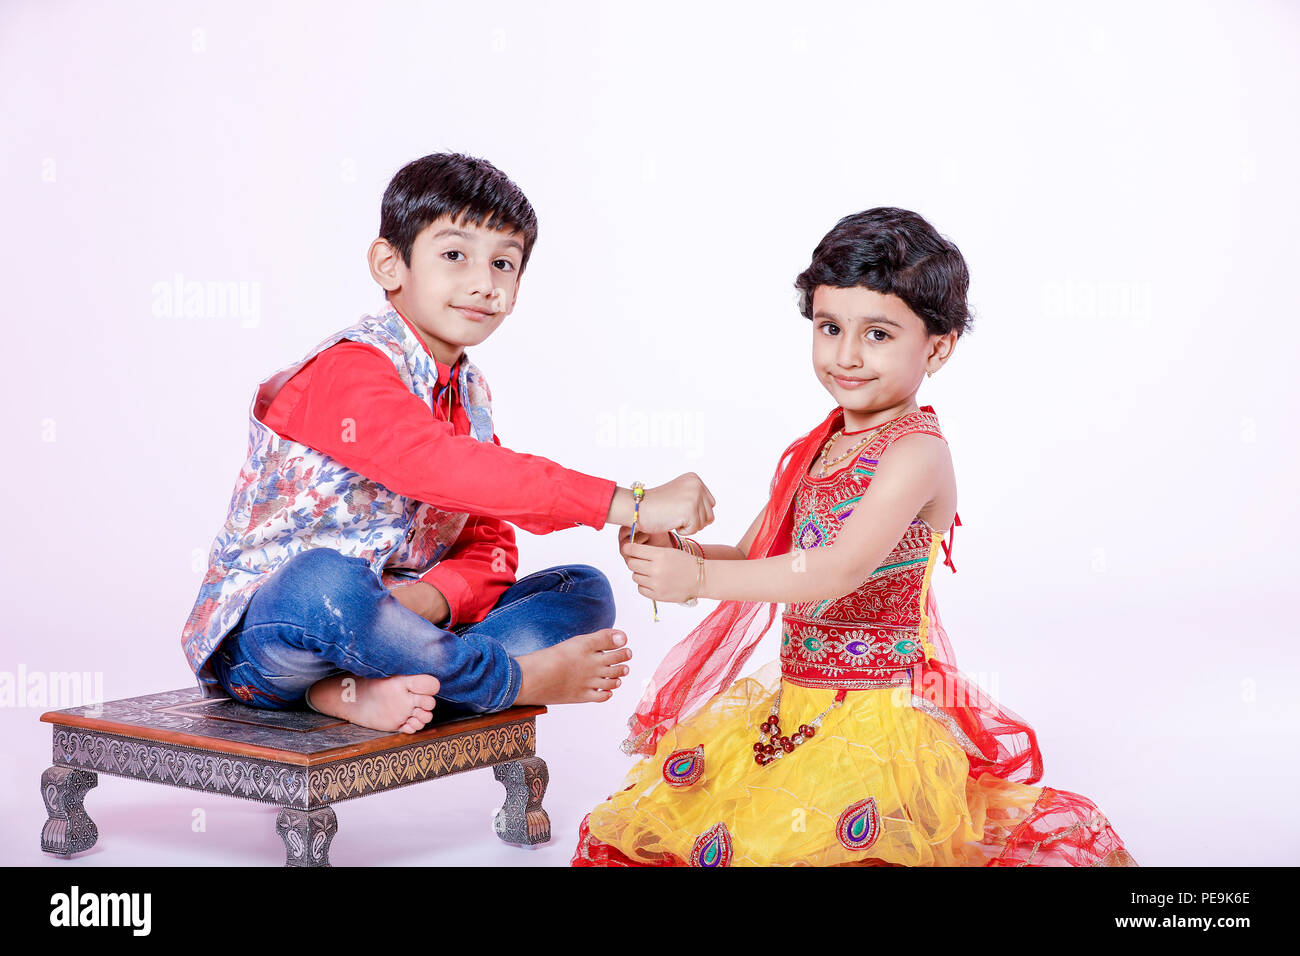 cute Indian brother and sister celebrating raksha bandhan festival - Stock Image